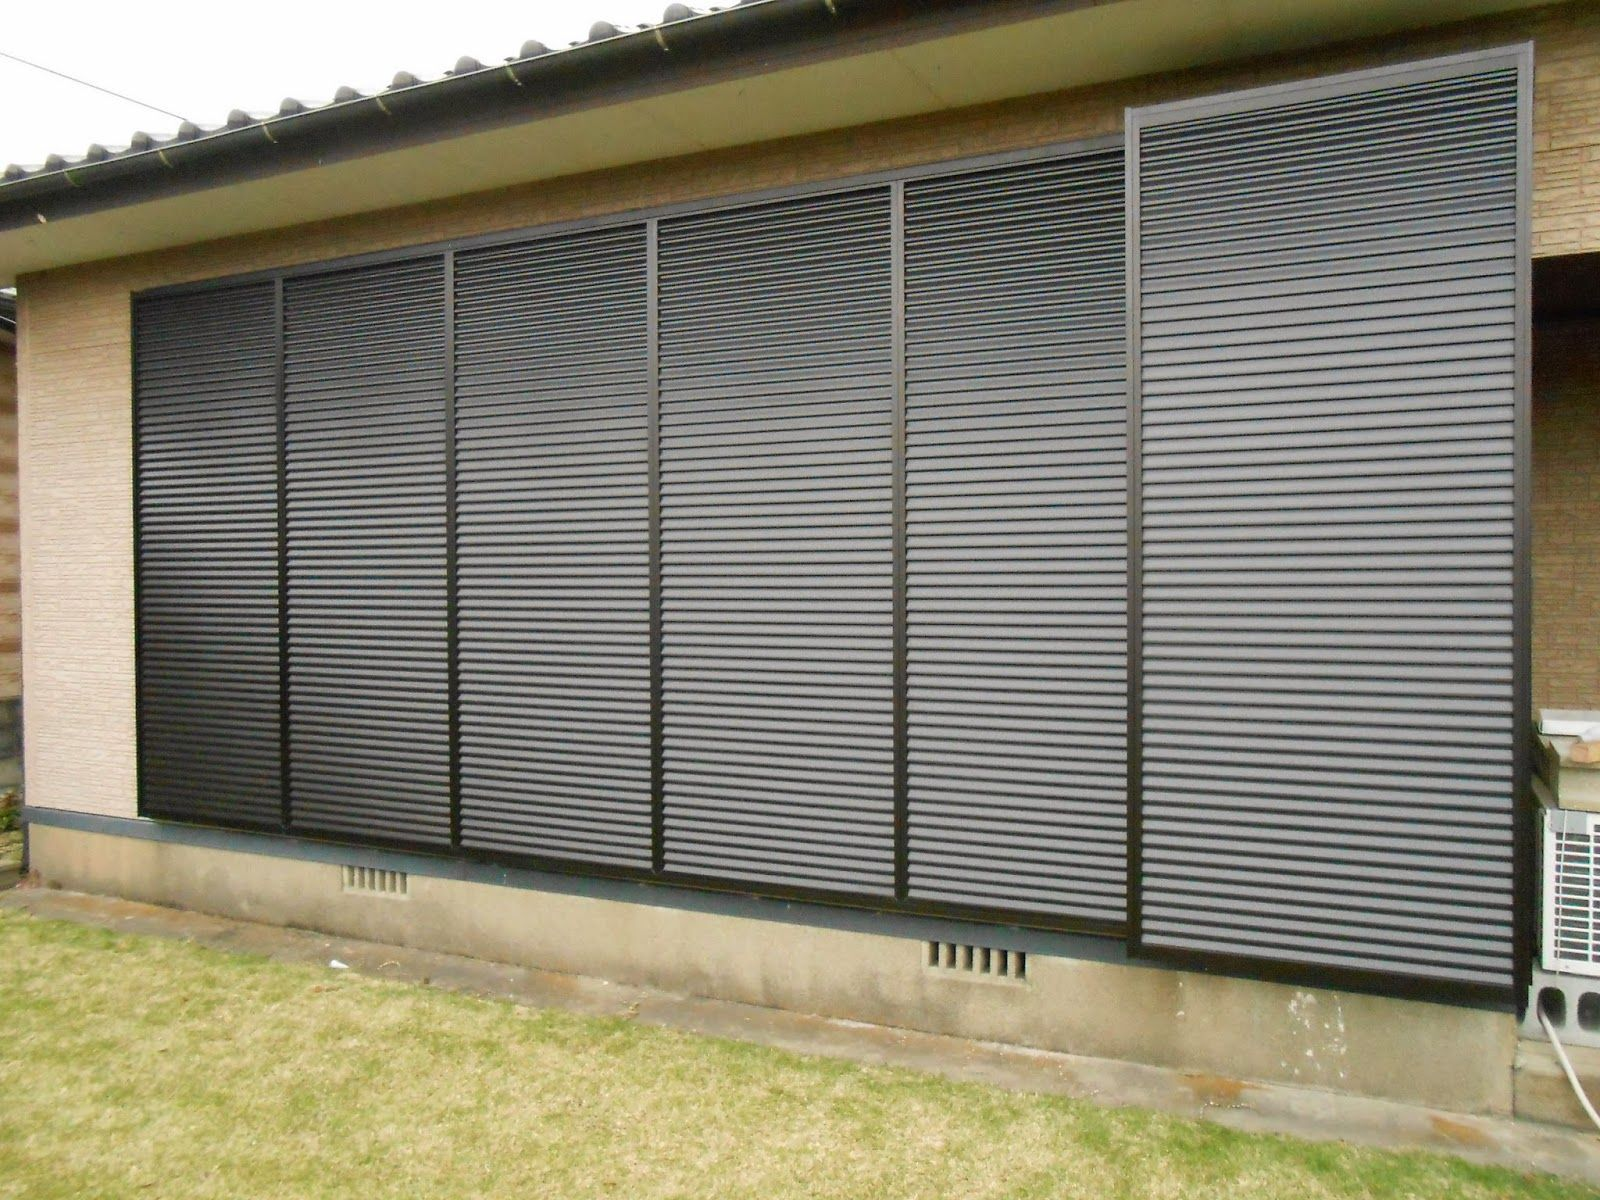 A Sliding Shutter Door Protect People In Japan With Images